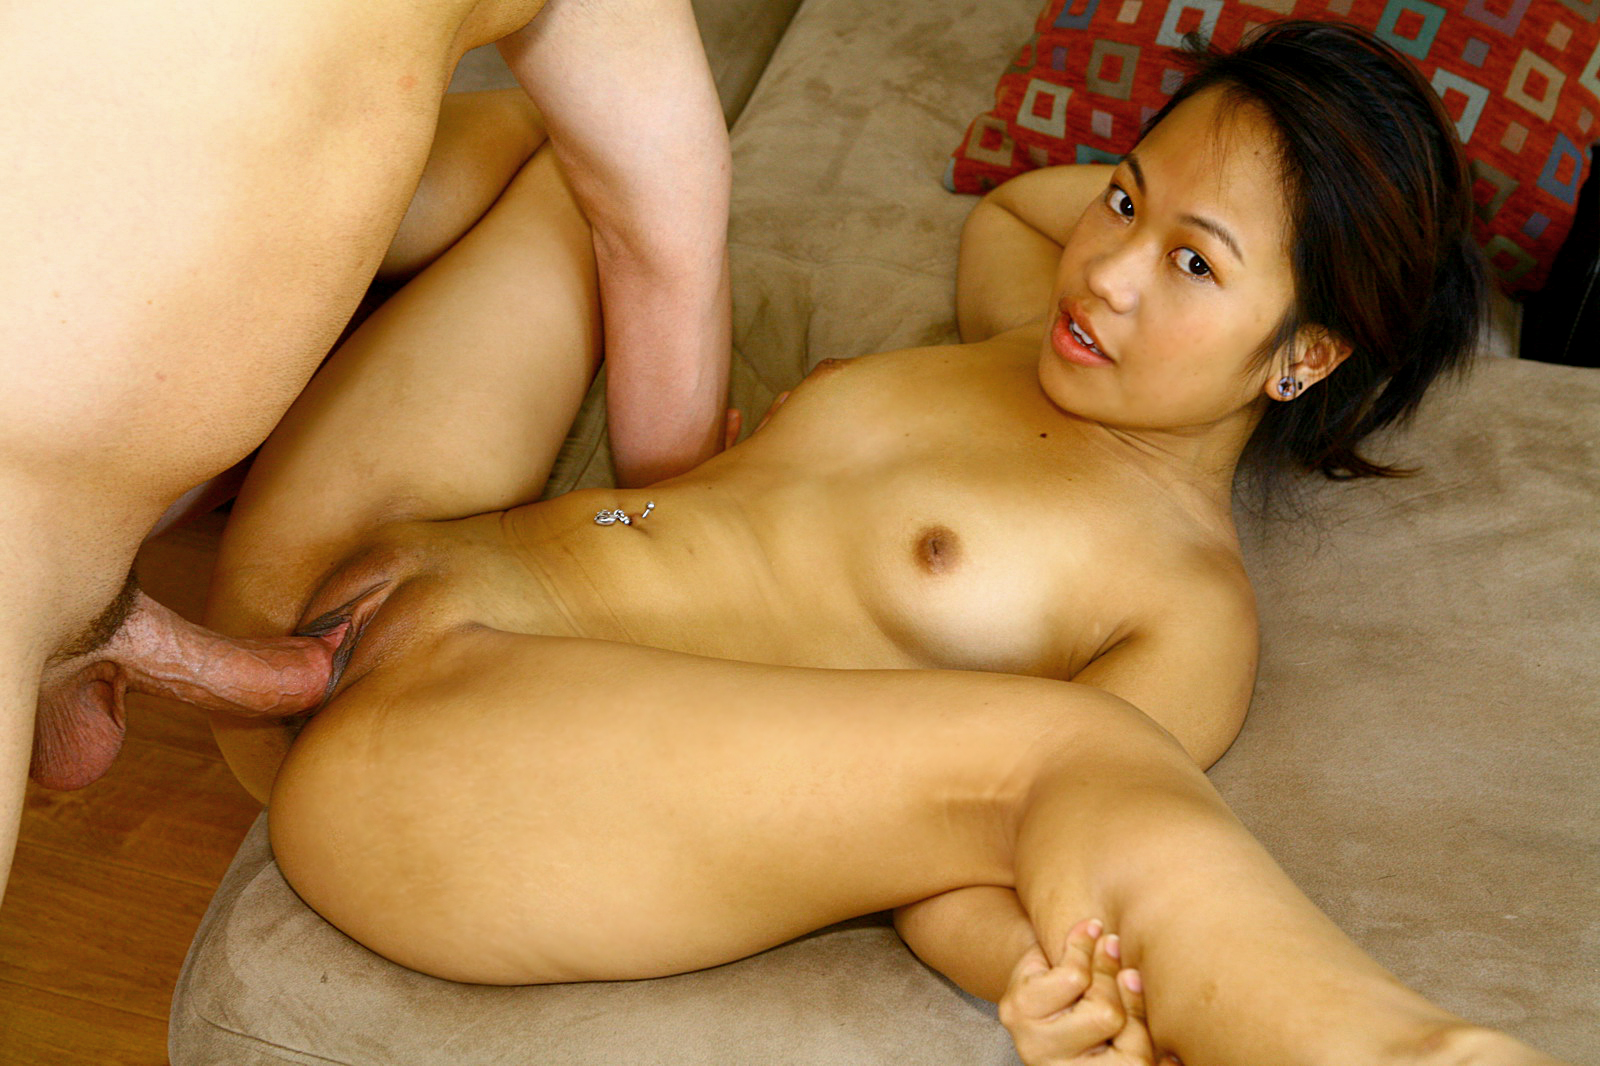 fucking asian women